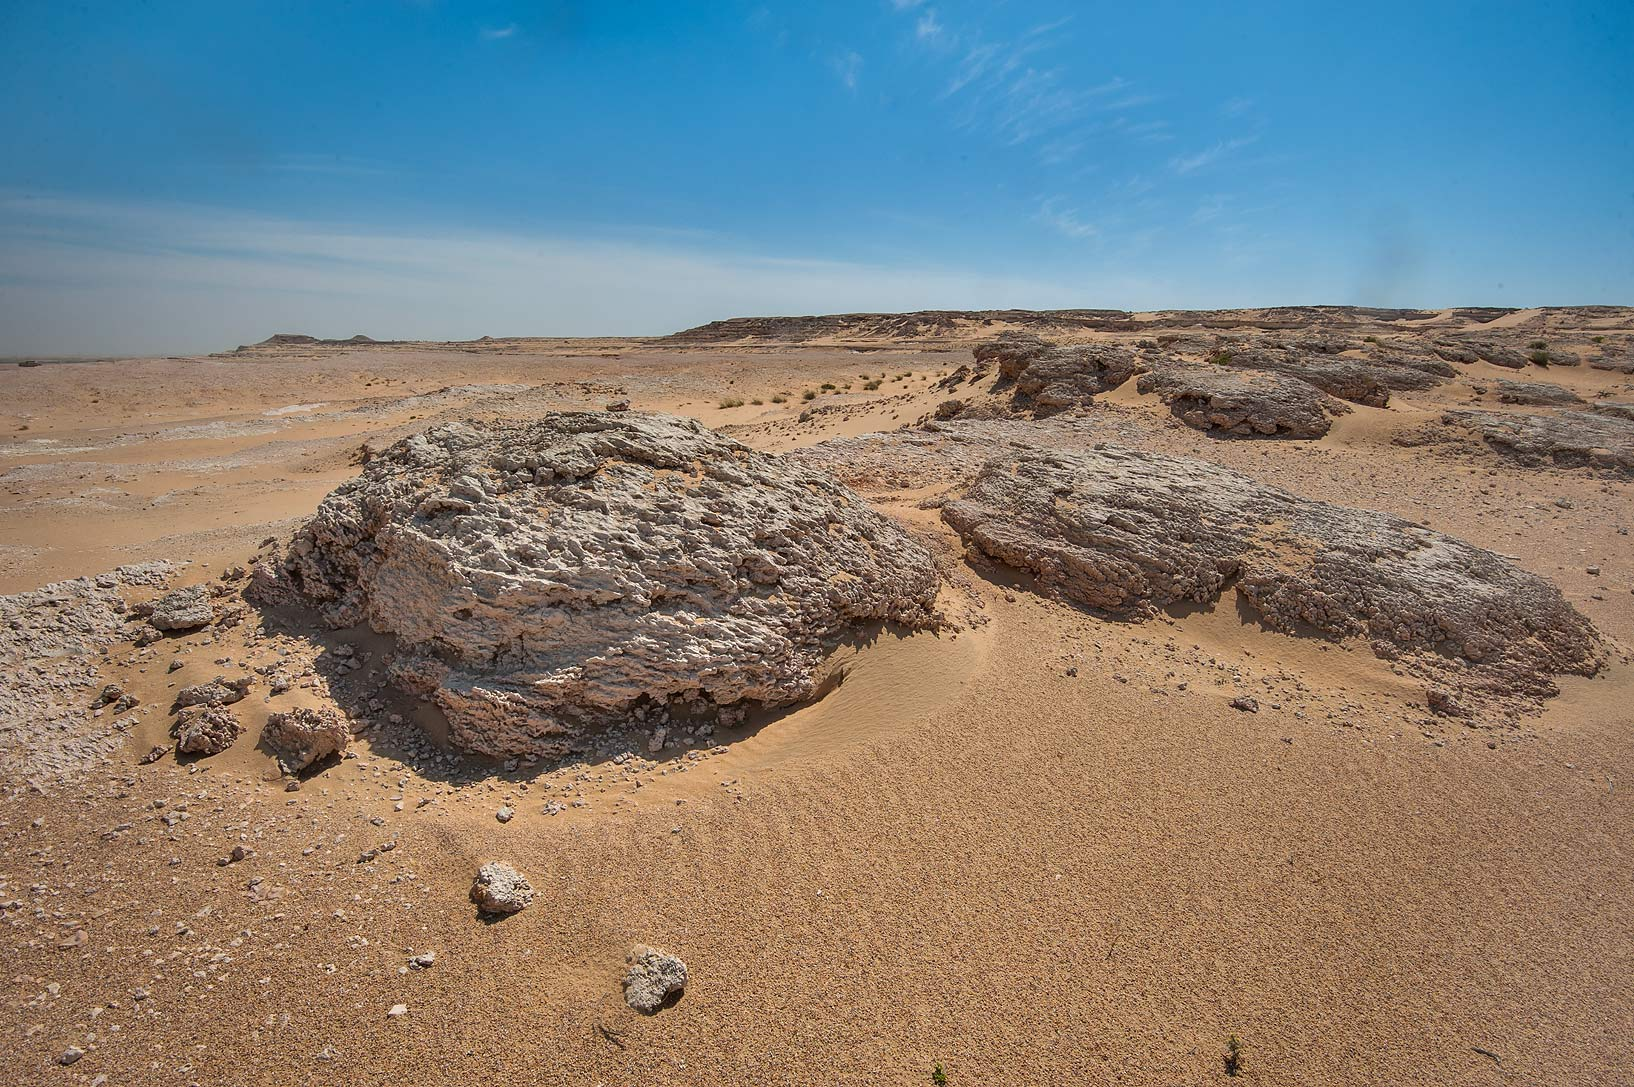 Fossilized stromatolites (microbial mats) in area...Jebel Al-Nakhsh in south-western Qatar